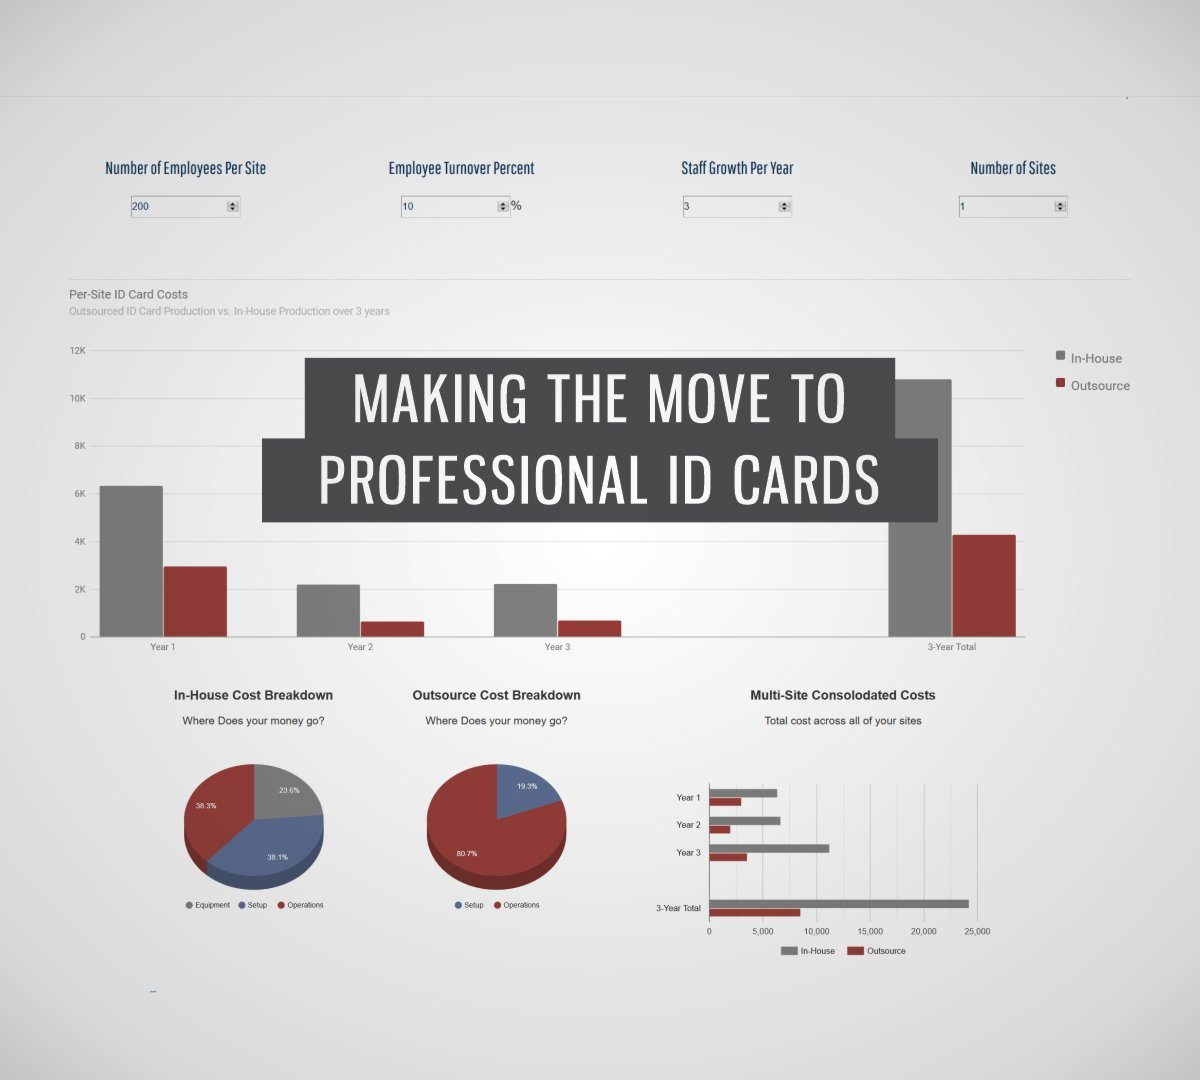 Making the Move to Professional ID Cards Blog